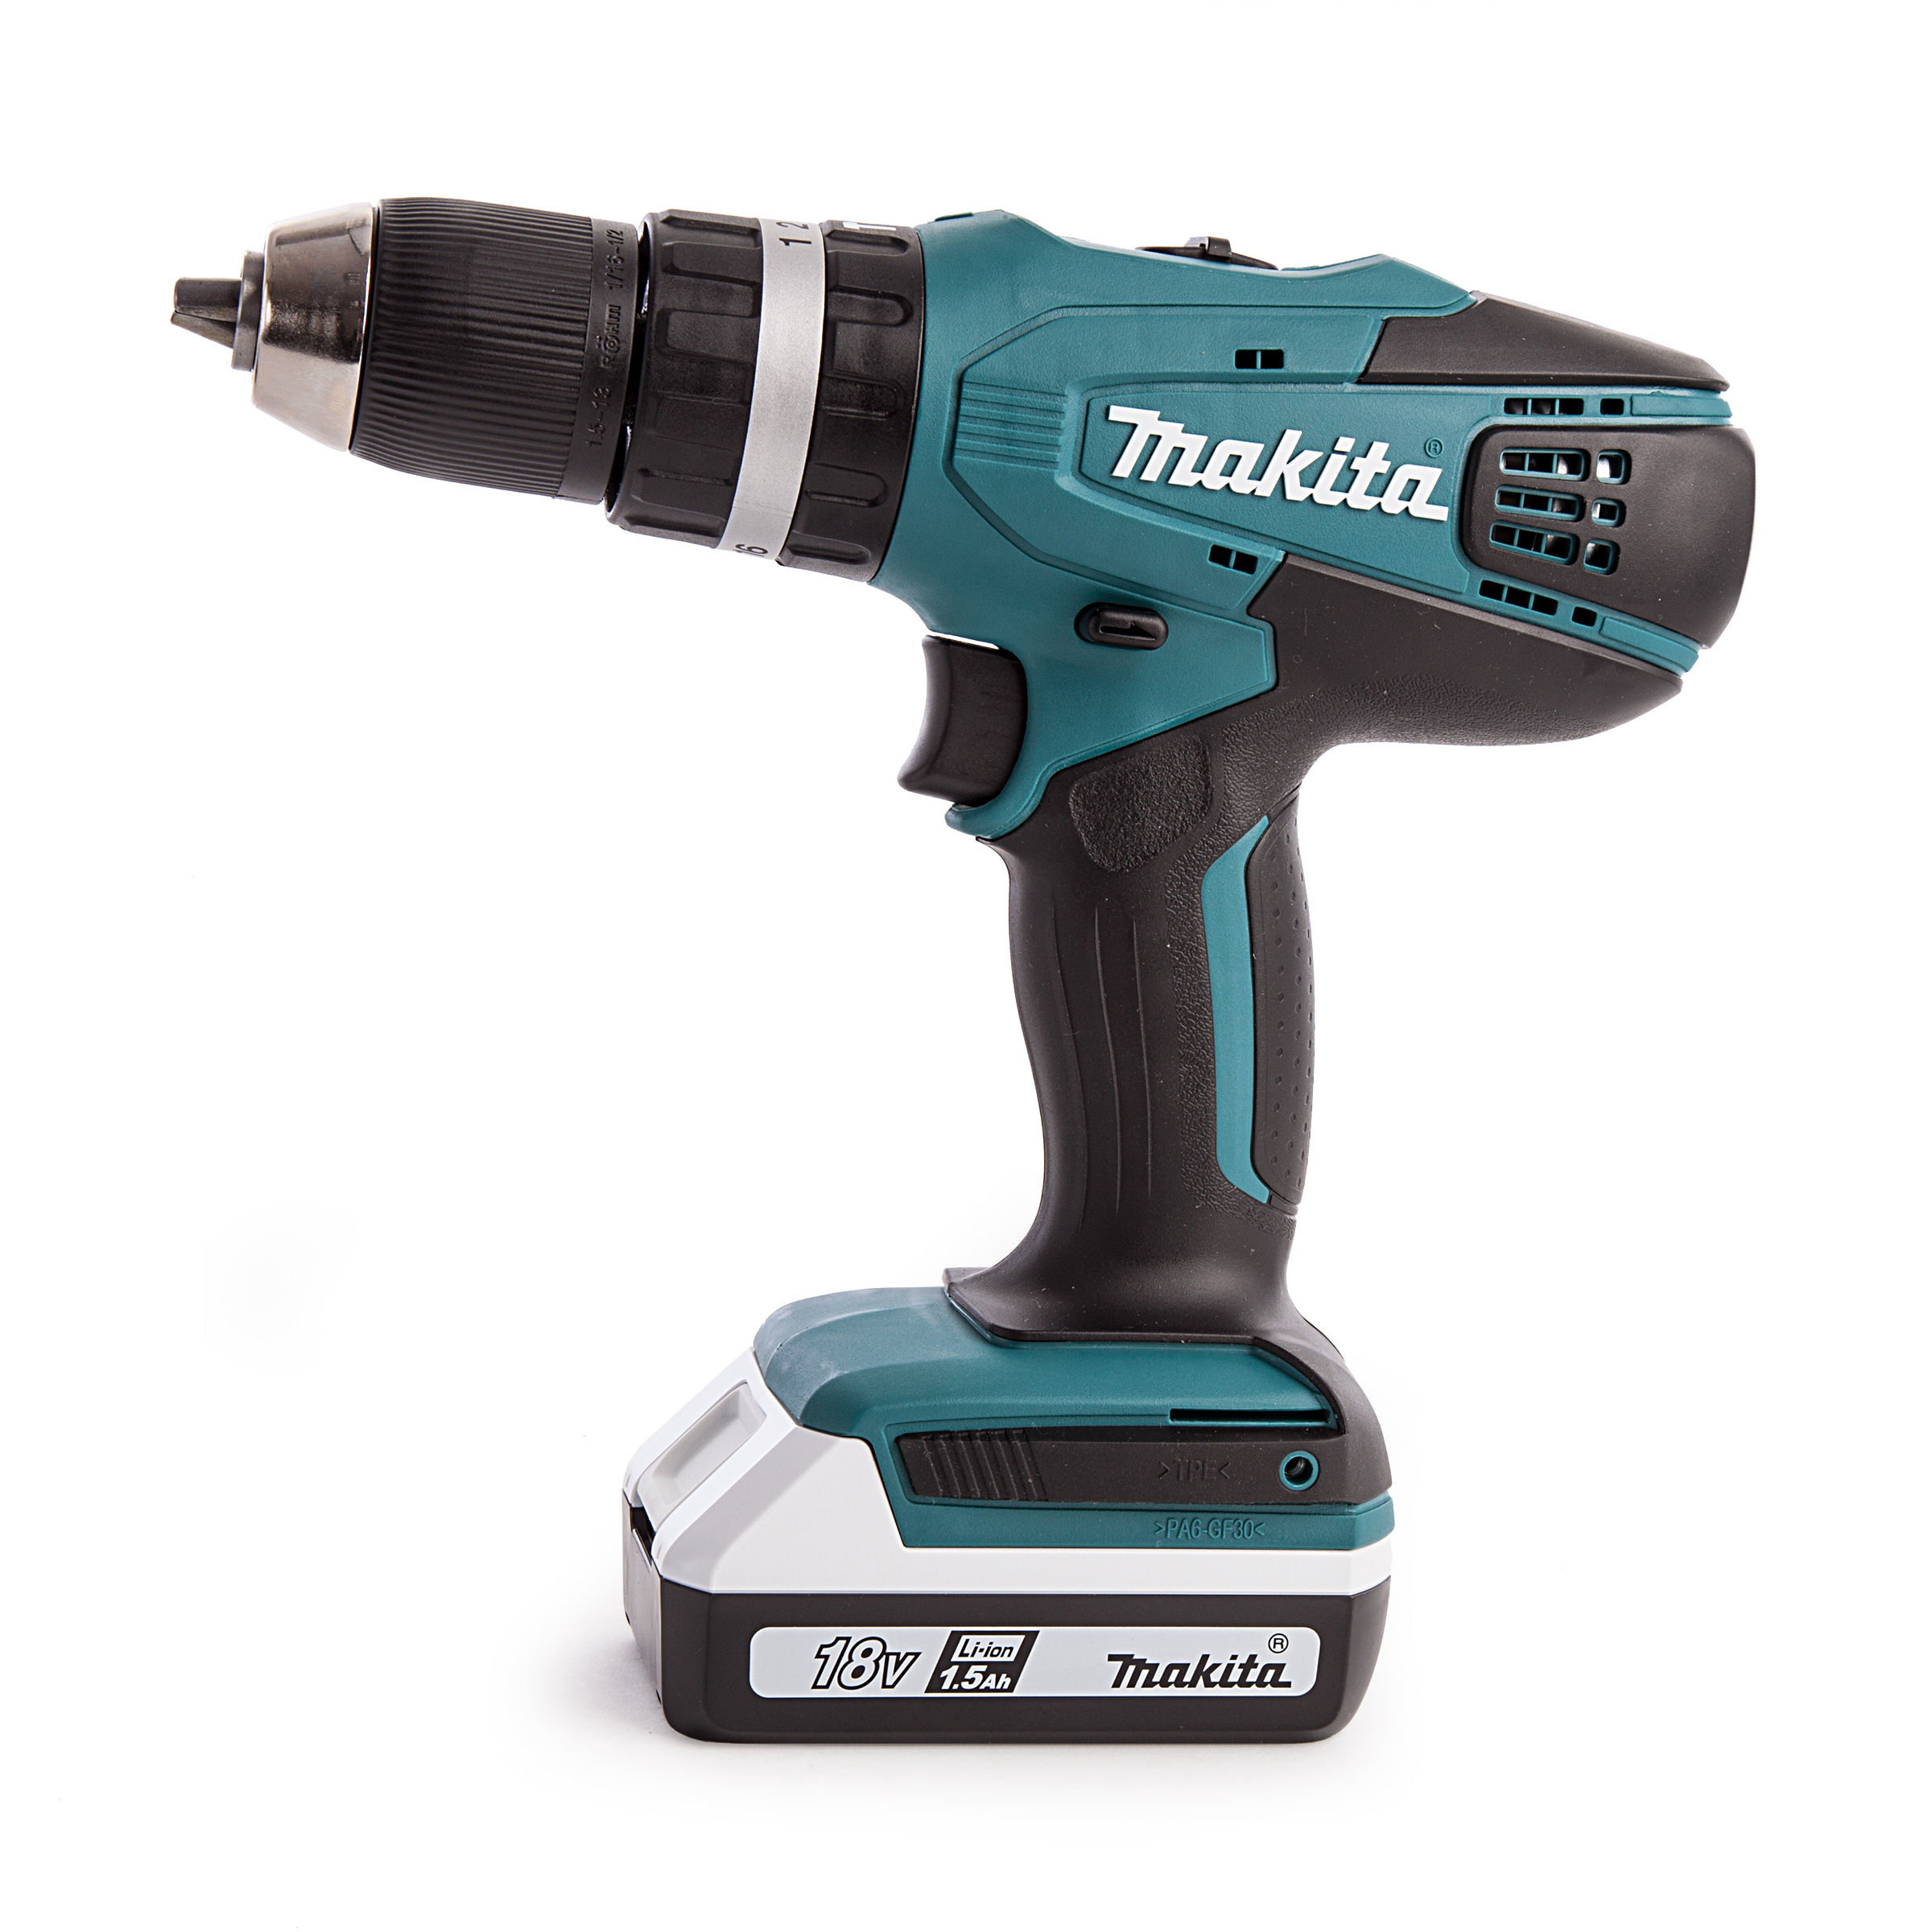 Makita DK18015X1 G-Series 18v Combi Drill & Impact Driver Twin Kit Power Tools Power Tool Sets